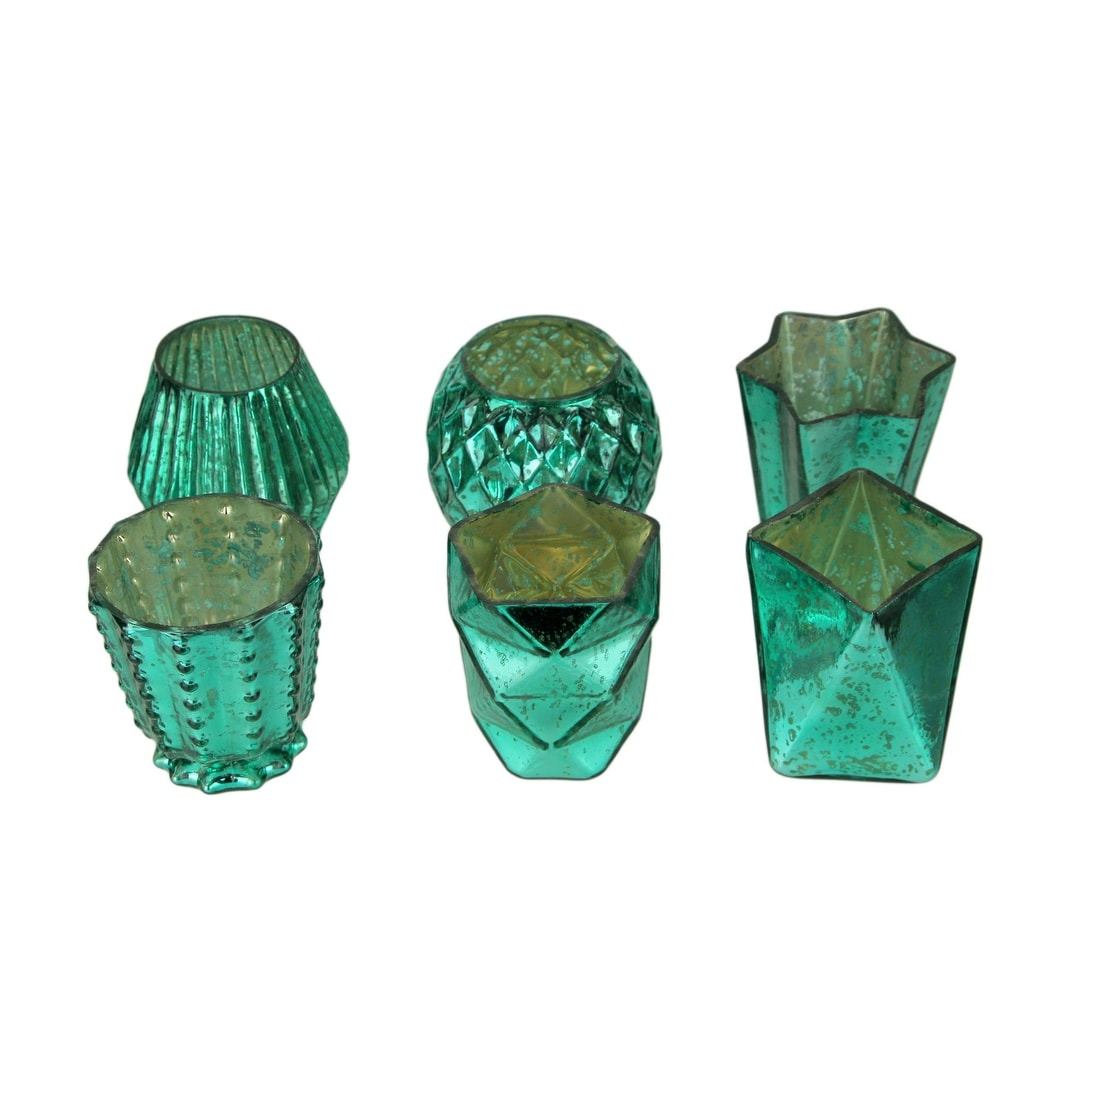 Candle Holders 3 Diameter Green Plastic Pack of 10